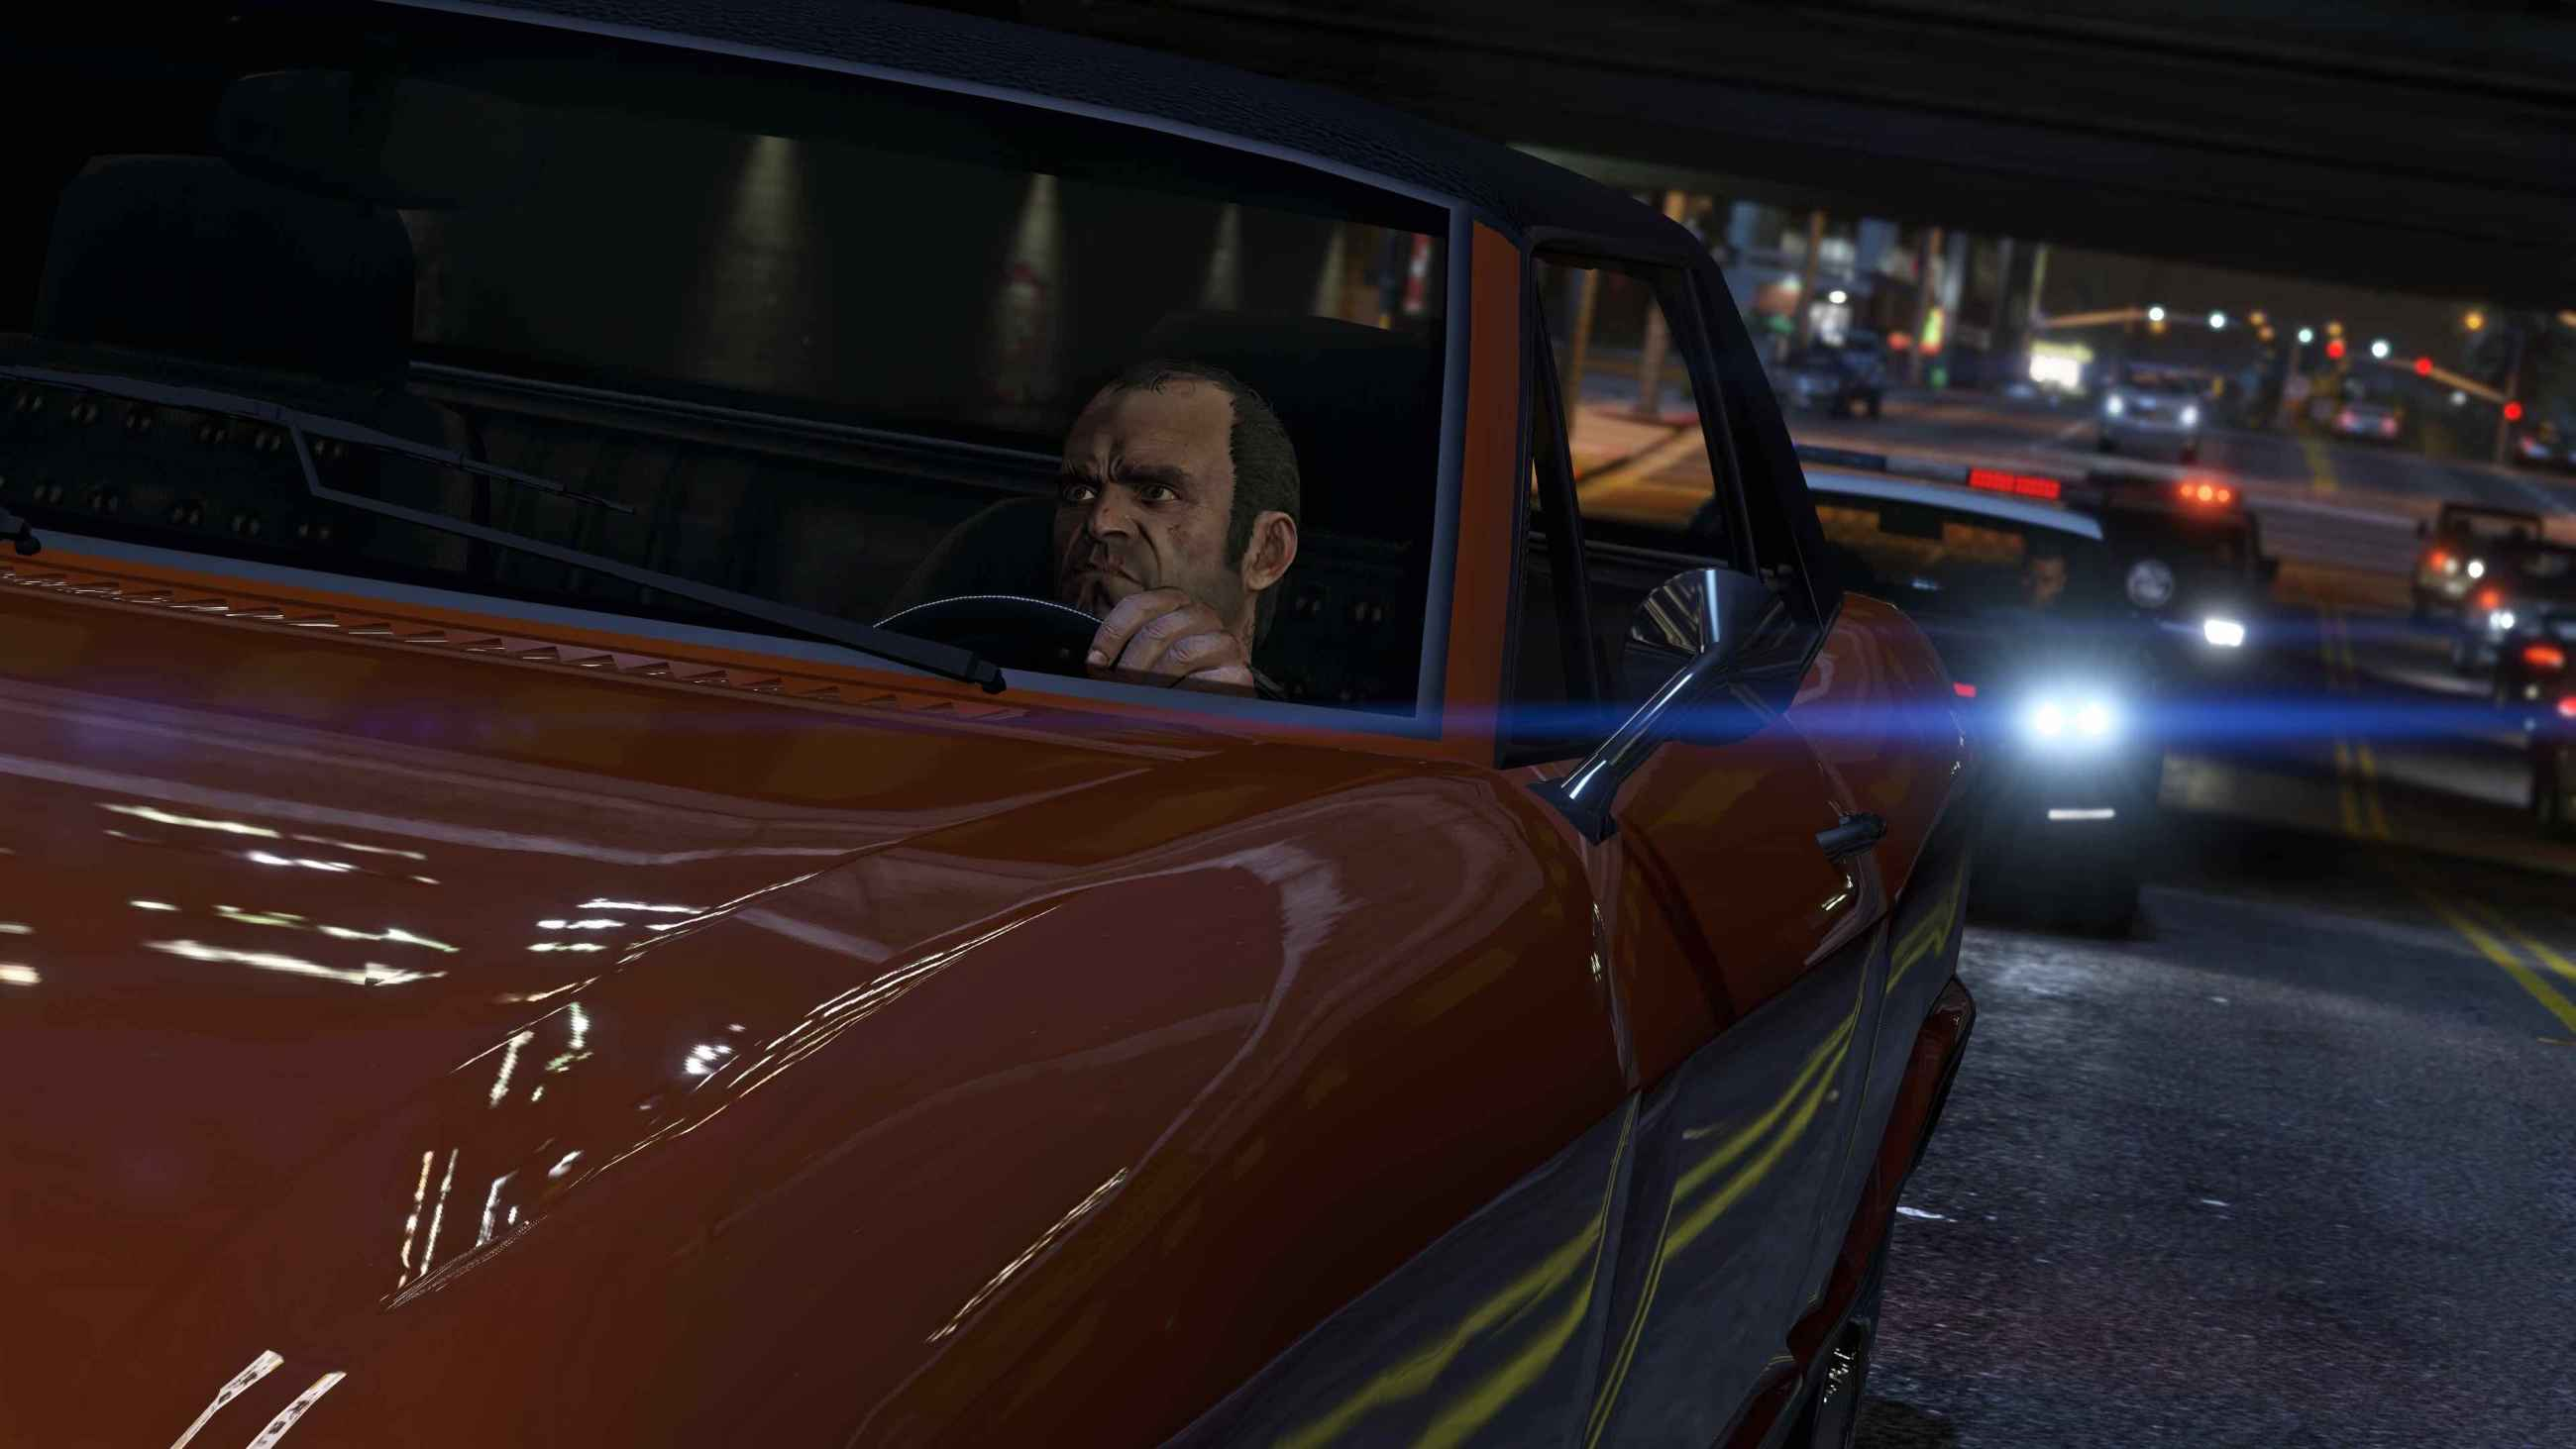 screen capture from the video game Grand Theft Auto V